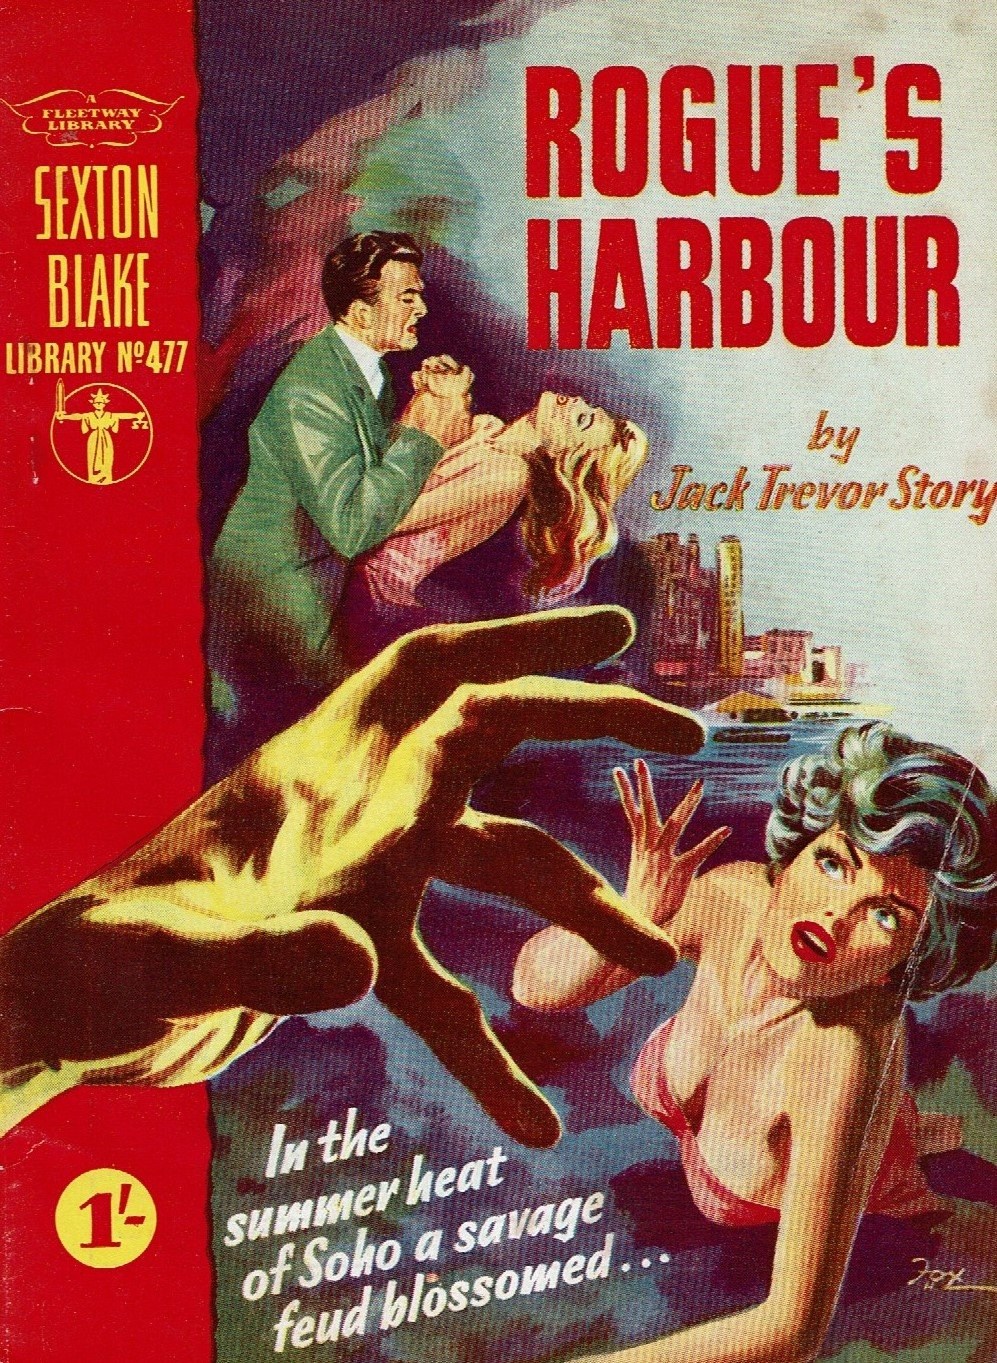 Rogue's Harbour by Jack Trevor Story [Sexton Blake library no. 477]